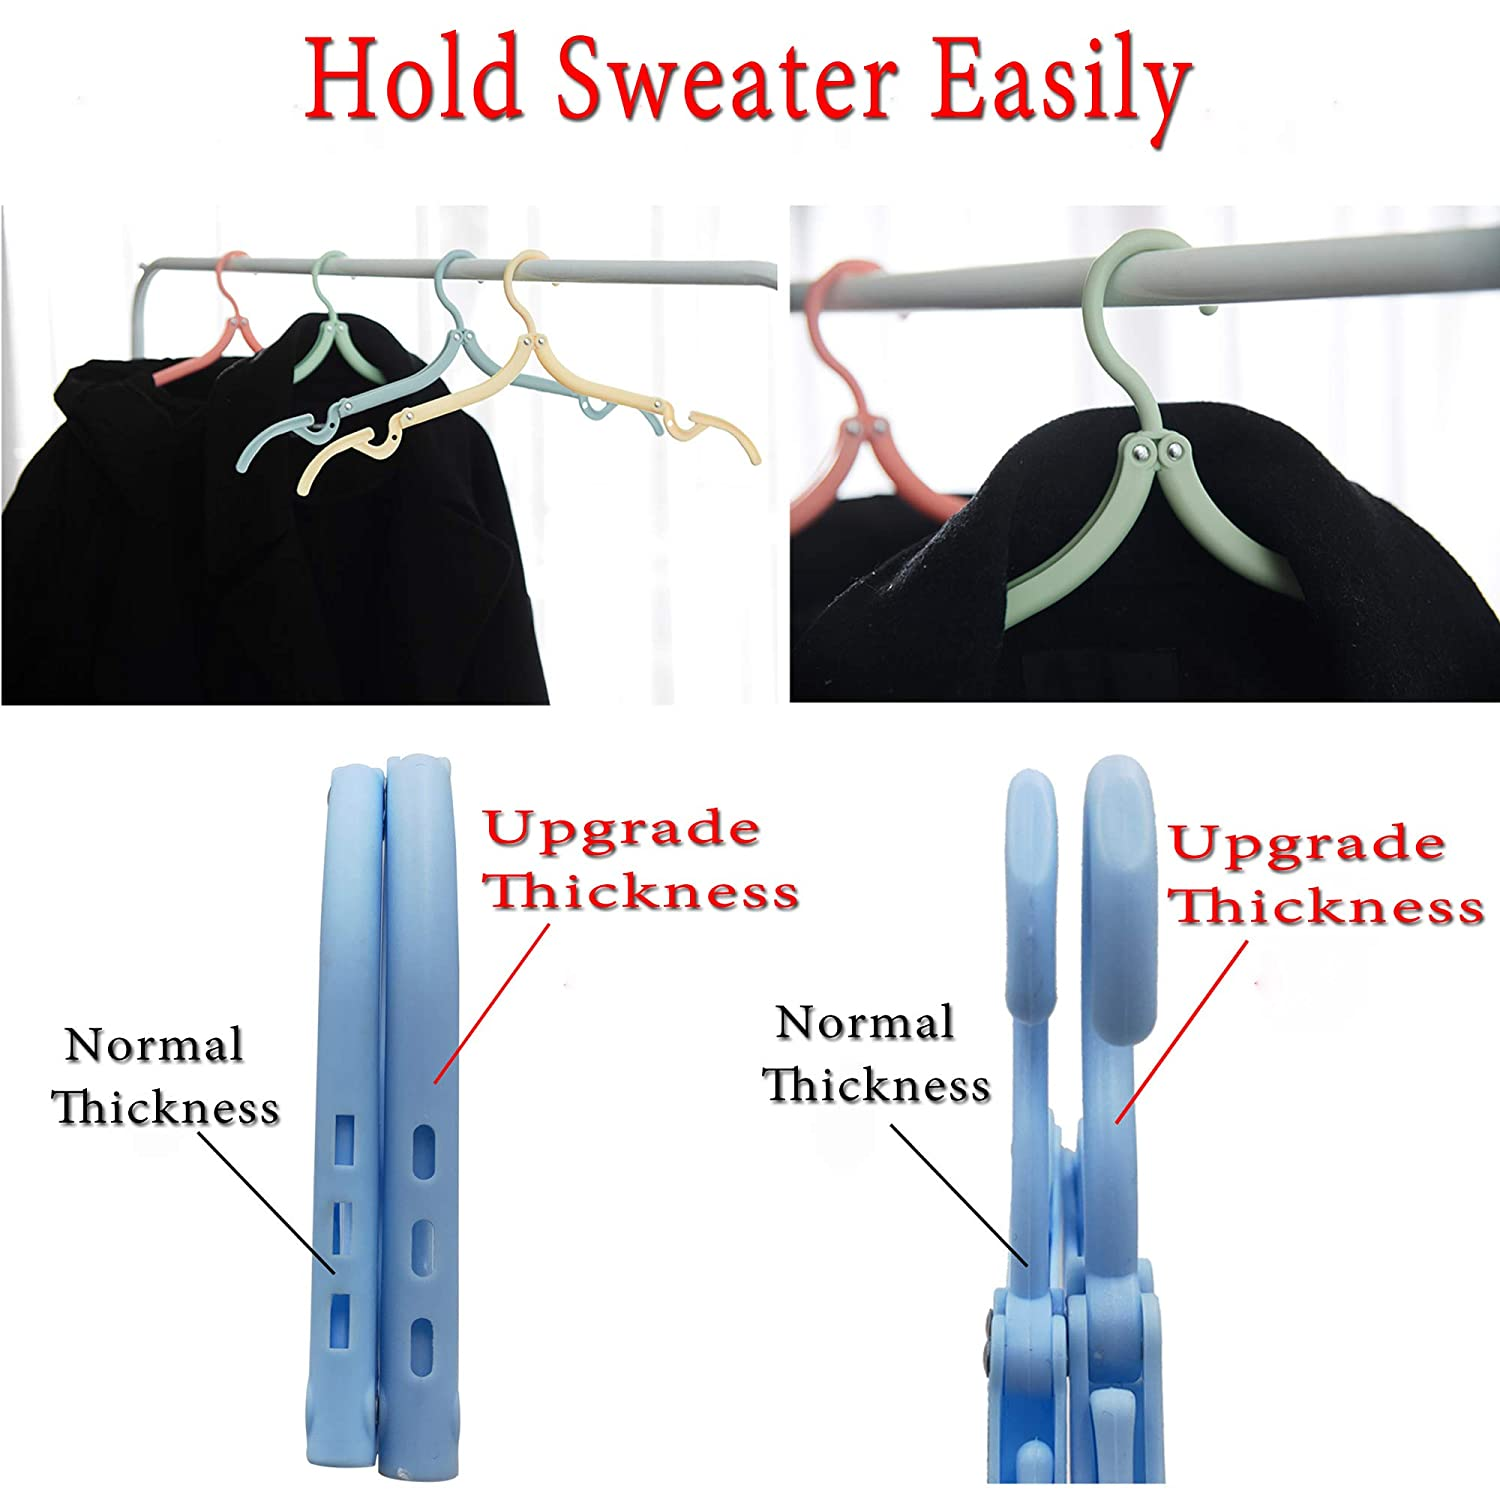 Heavy Duty CandyGrid 8 PCS Travel Hangers Foldable Clothes Drying Rack for Travel 32 Grams Portable Floding Clothes Hangers